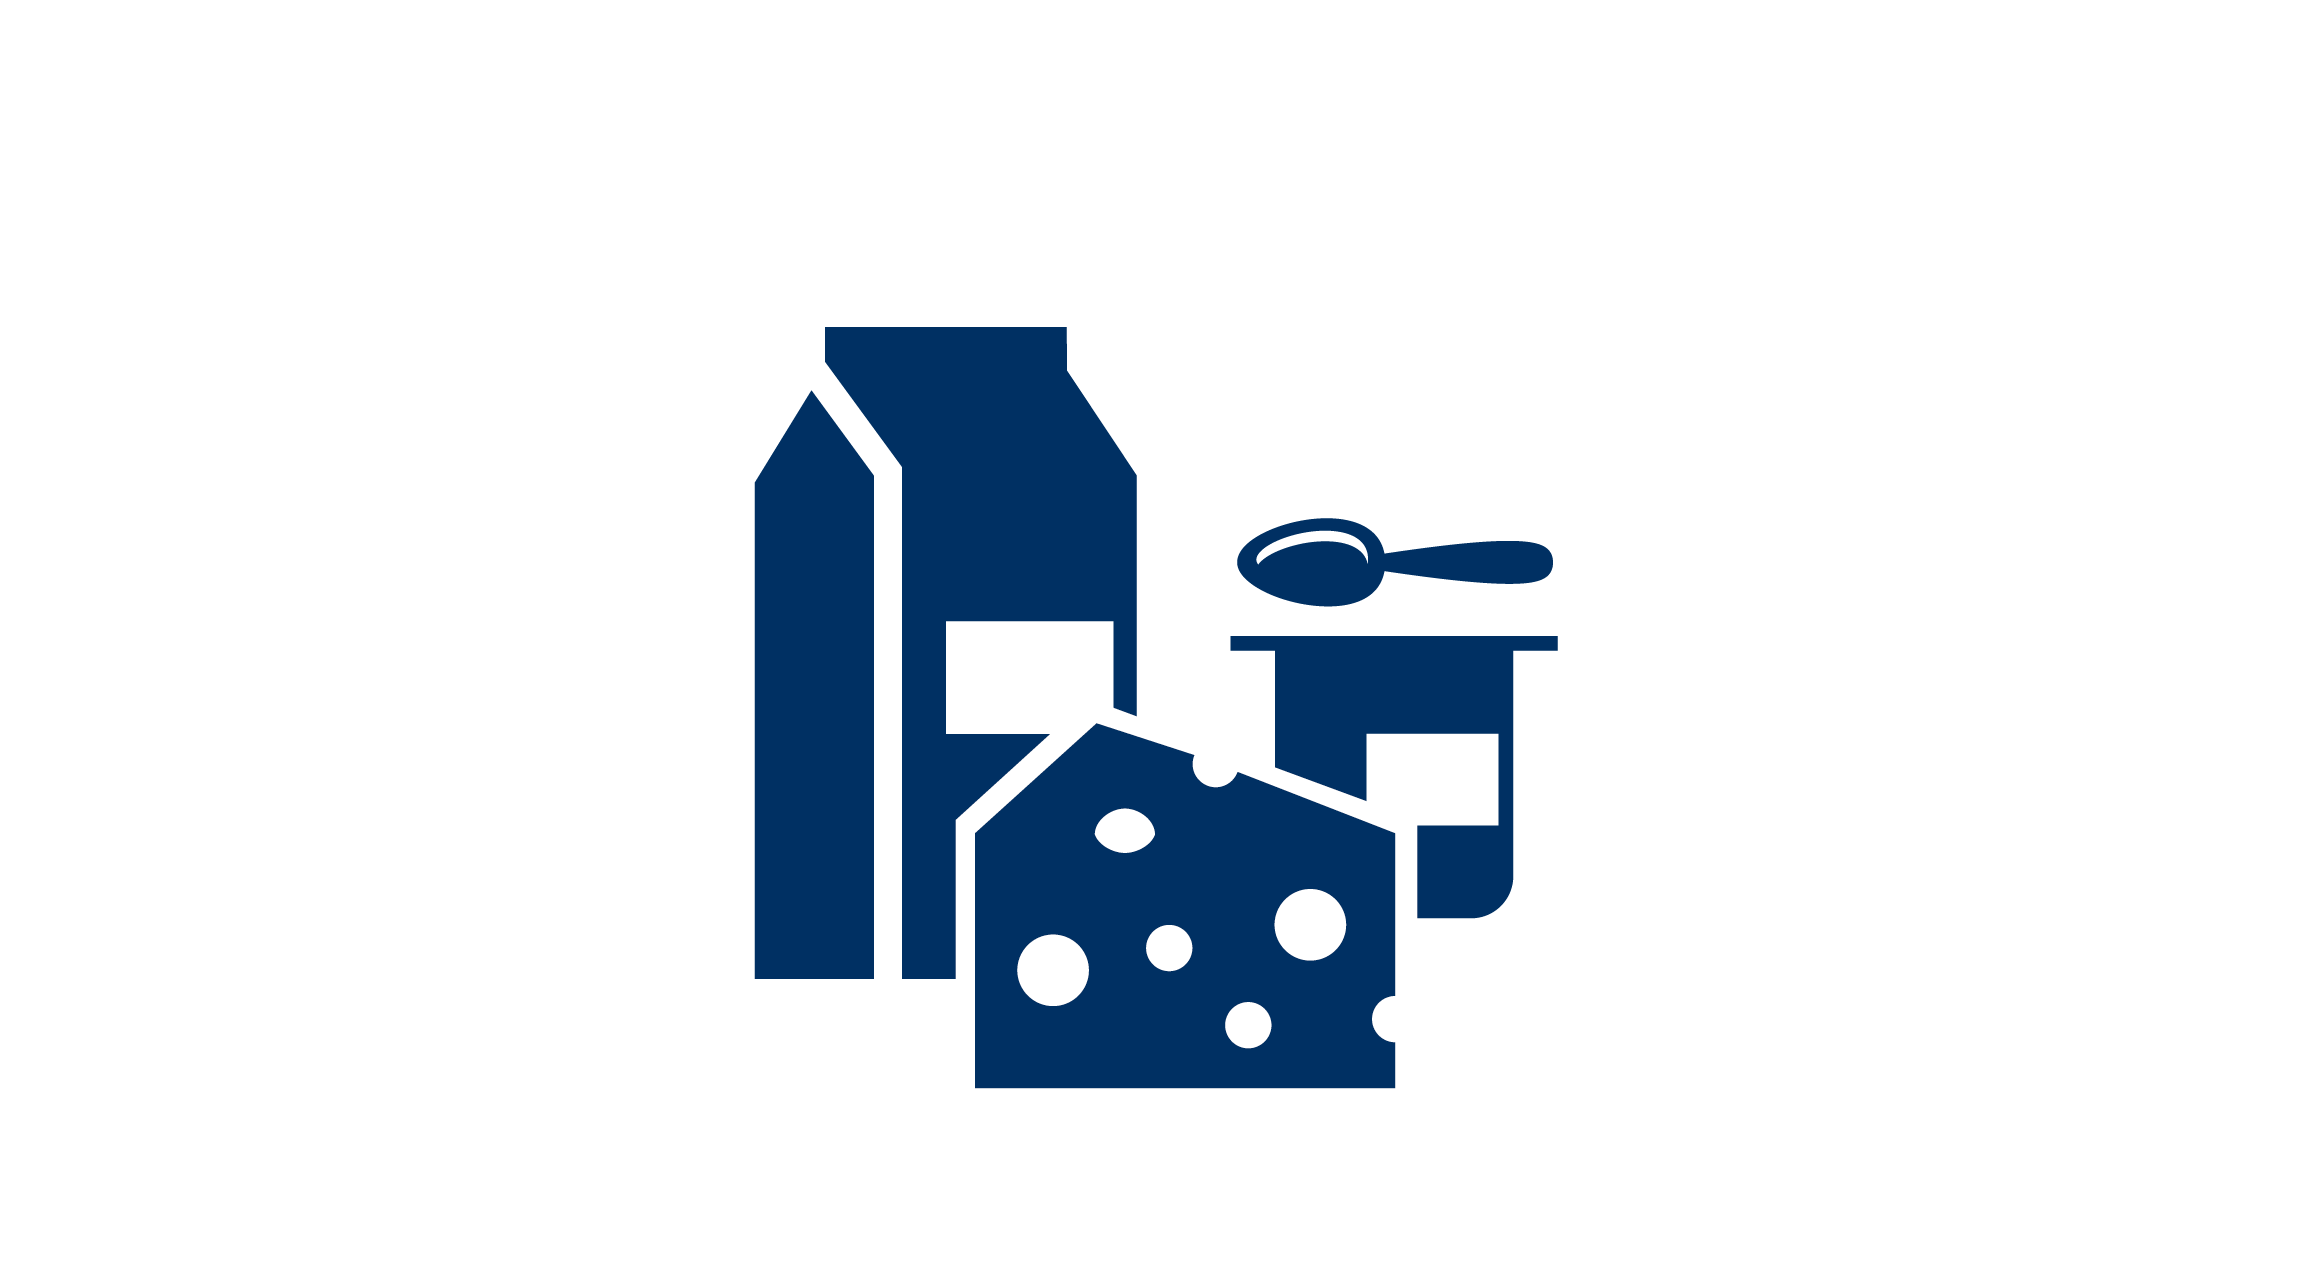 Icon with dairy procucts